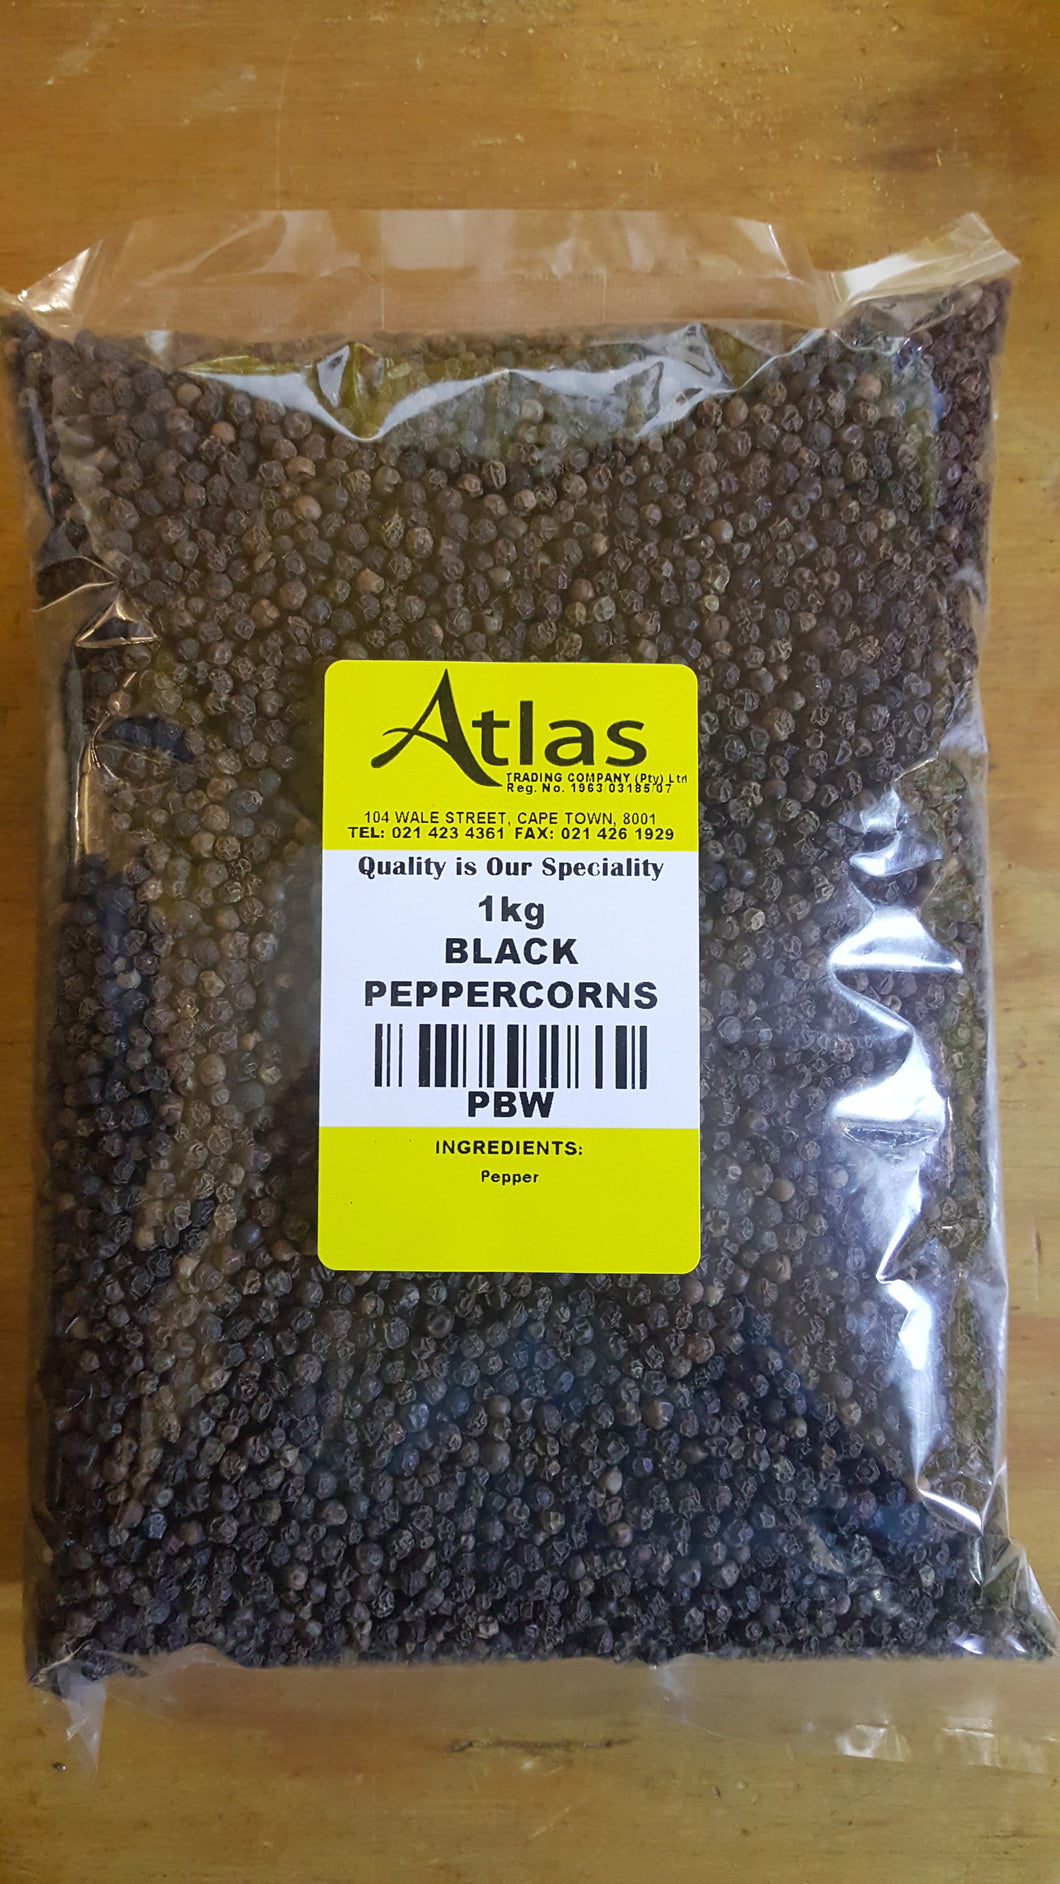 Whole Black Peppercorns